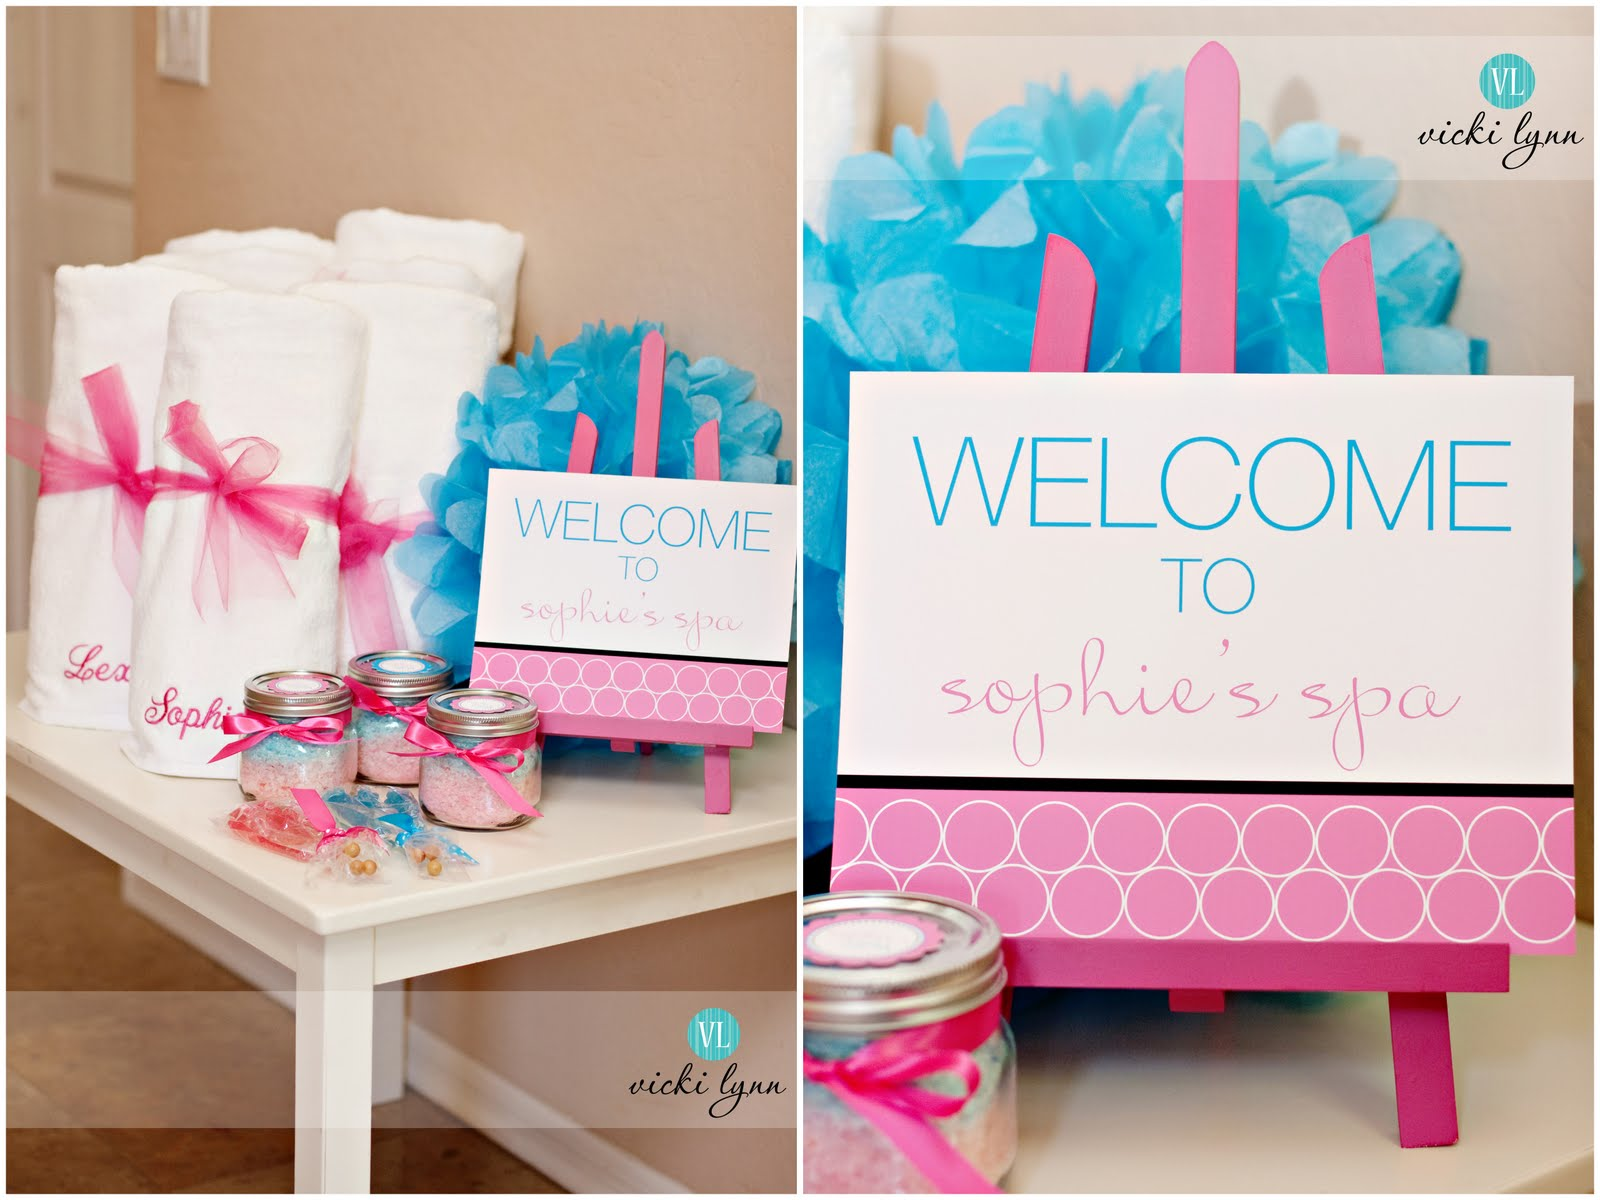 Birthday sale the tomkat studio blog - Last Weekend I Had The Pleasure Of Styling This Fabulous Spa Party For A Sweet Seven Year Old Sophie Lucky For Me I Worked With Her Creative Mom